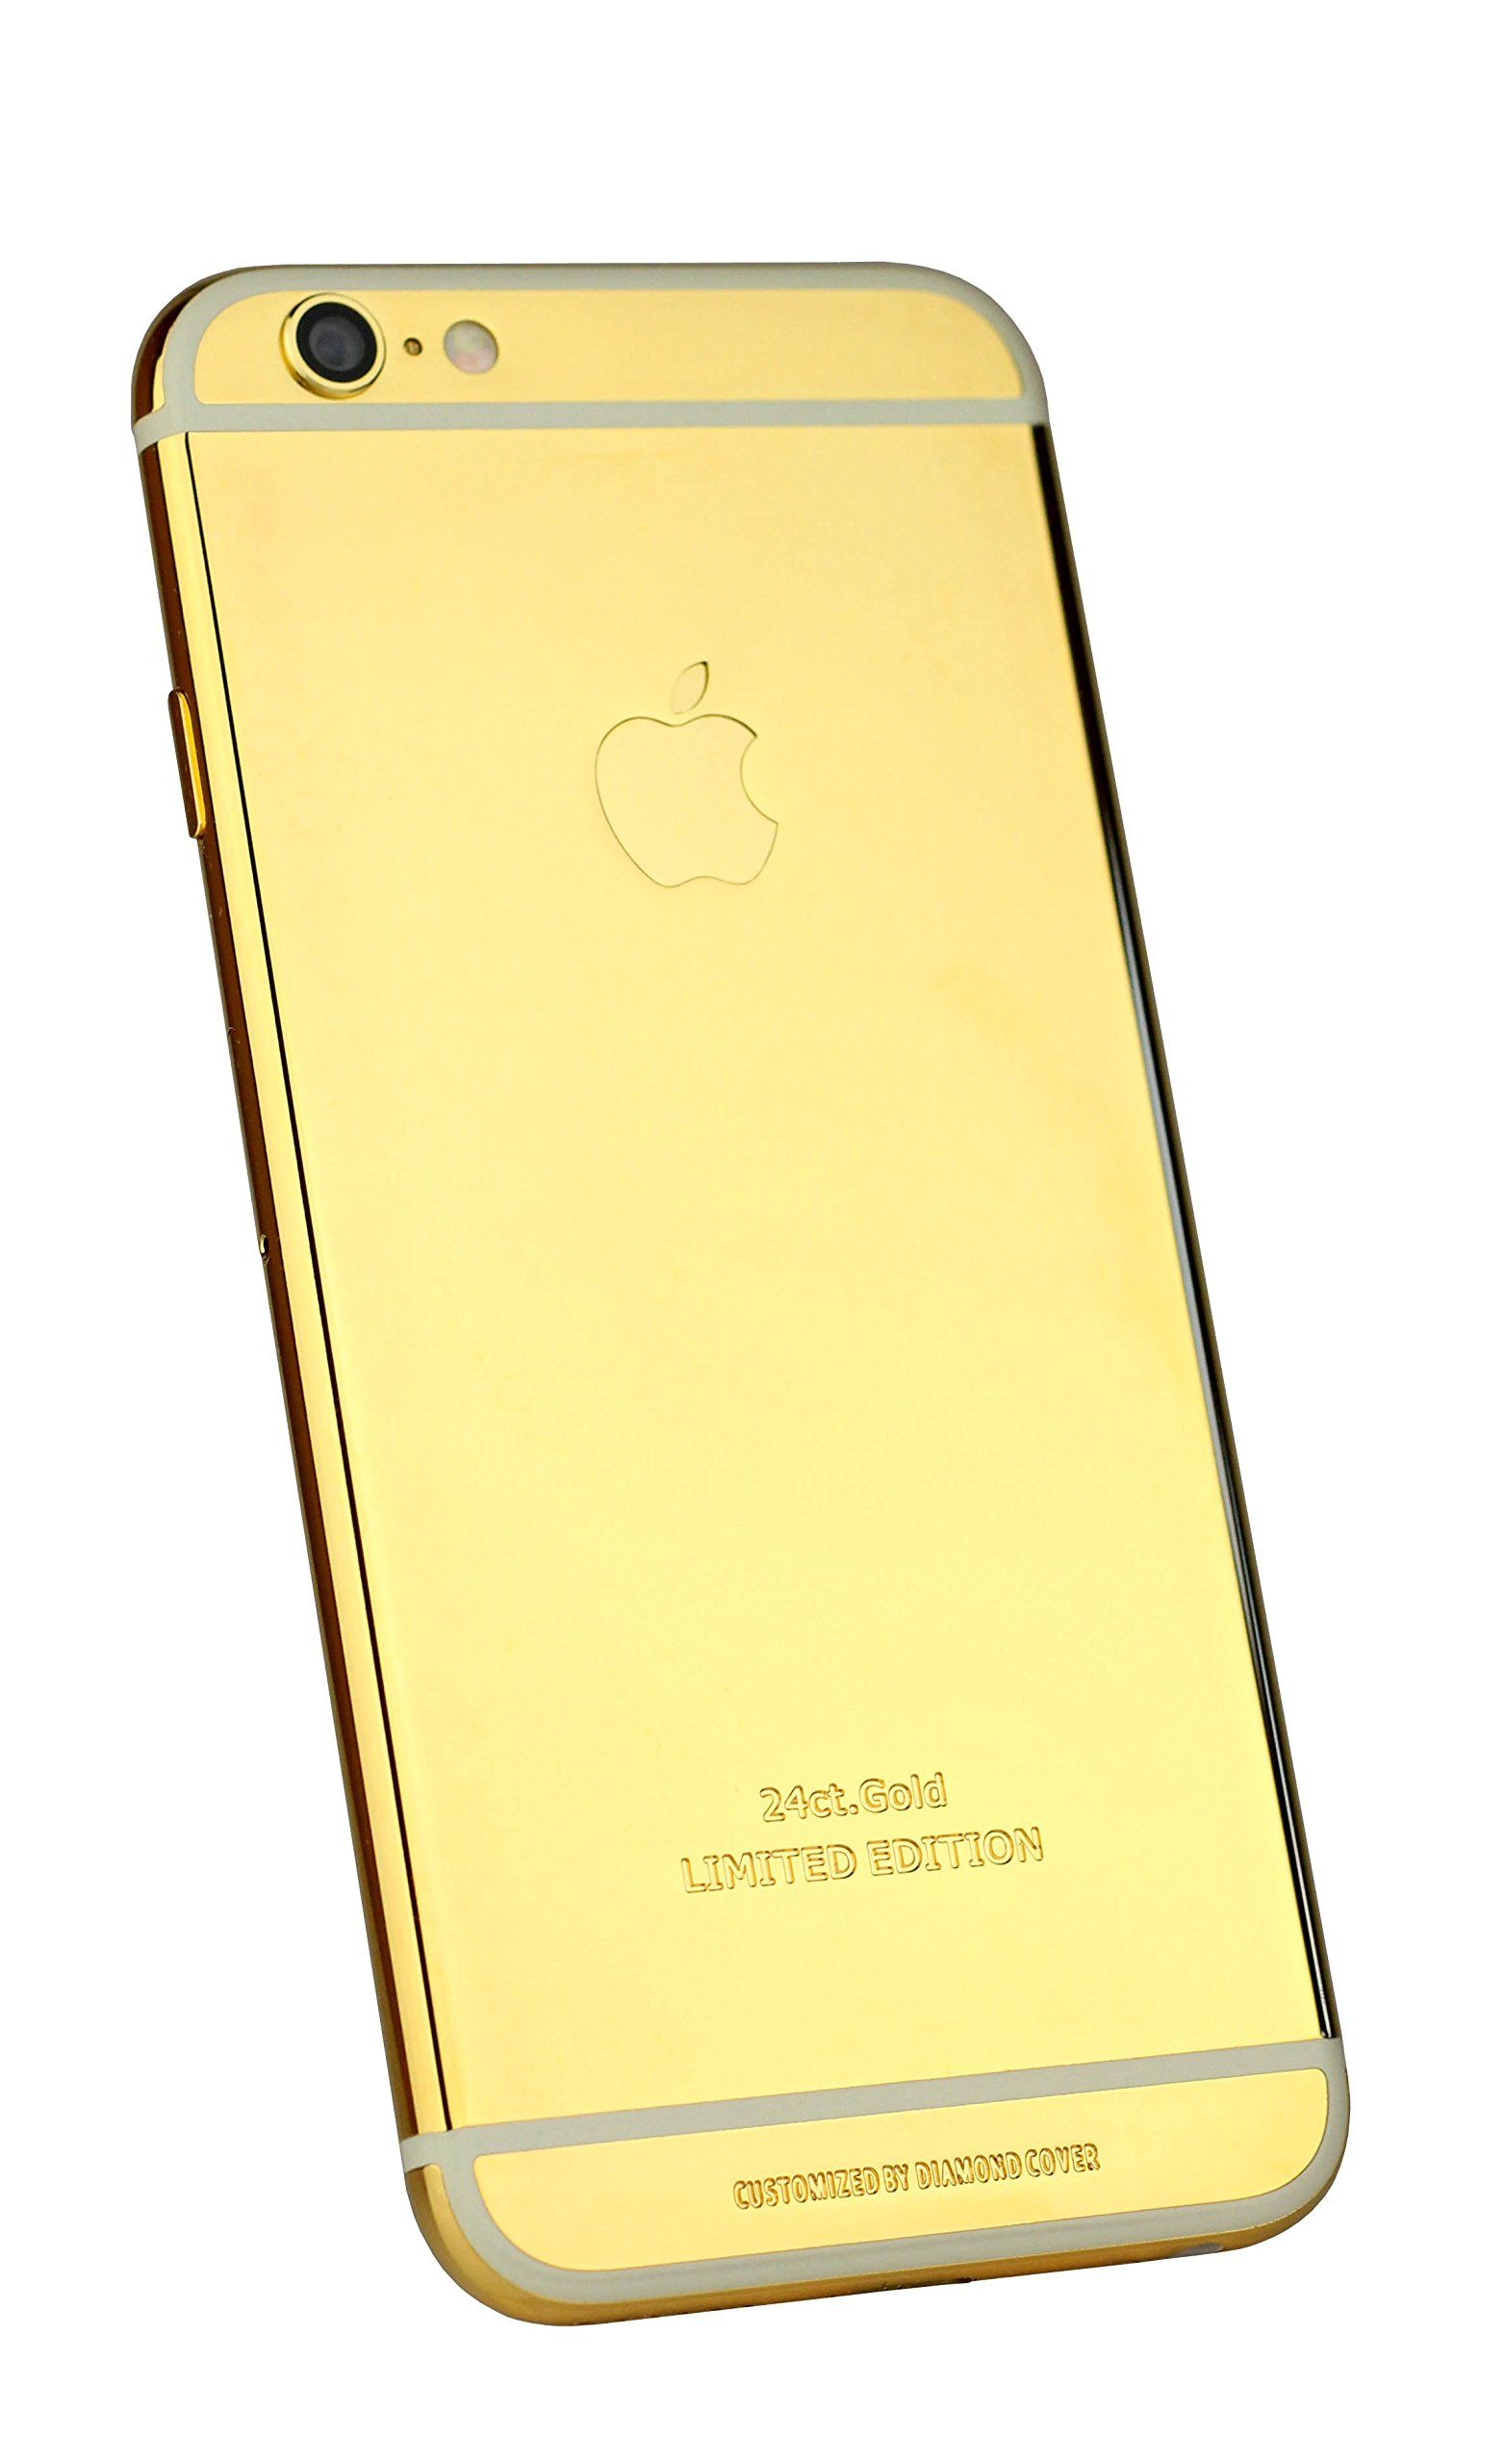 Diamond Cover High Class 24 ct Gold veredelt Apple iPhone 6 Smartphone 64GB